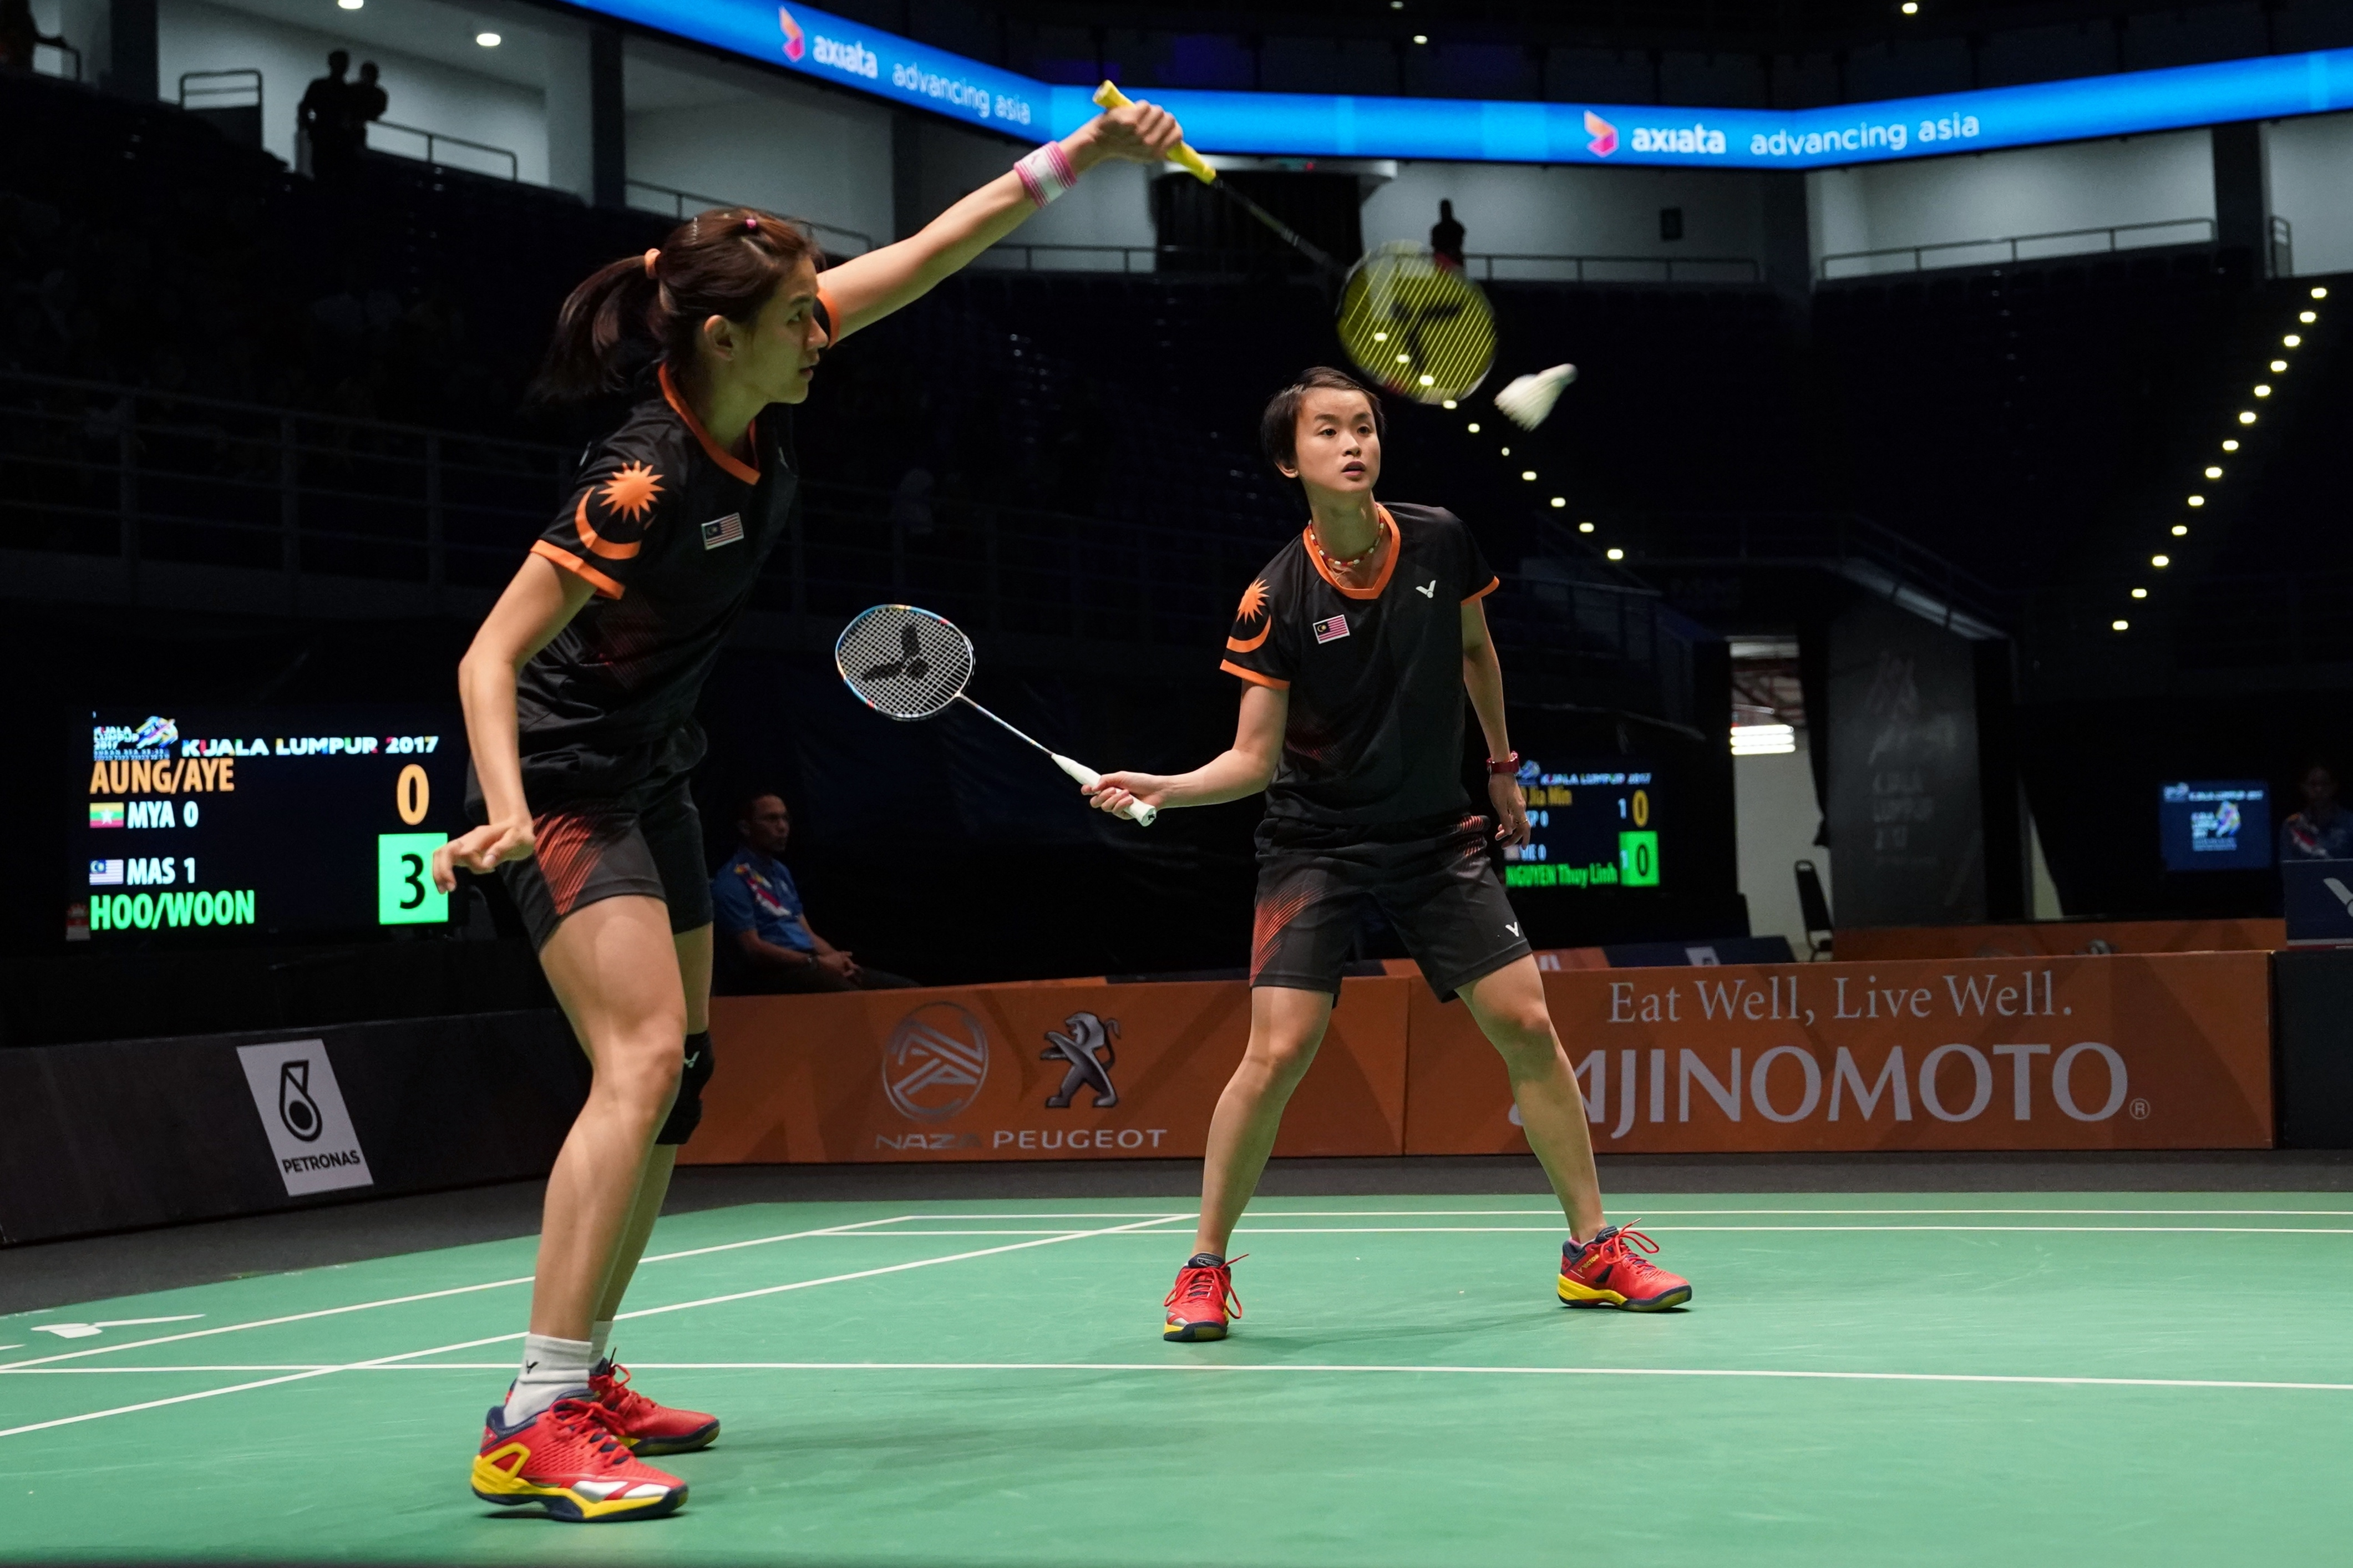 Malaysia secured their second point through the country's top doubles pair Vivian Hoo-Woon Khe Wei.